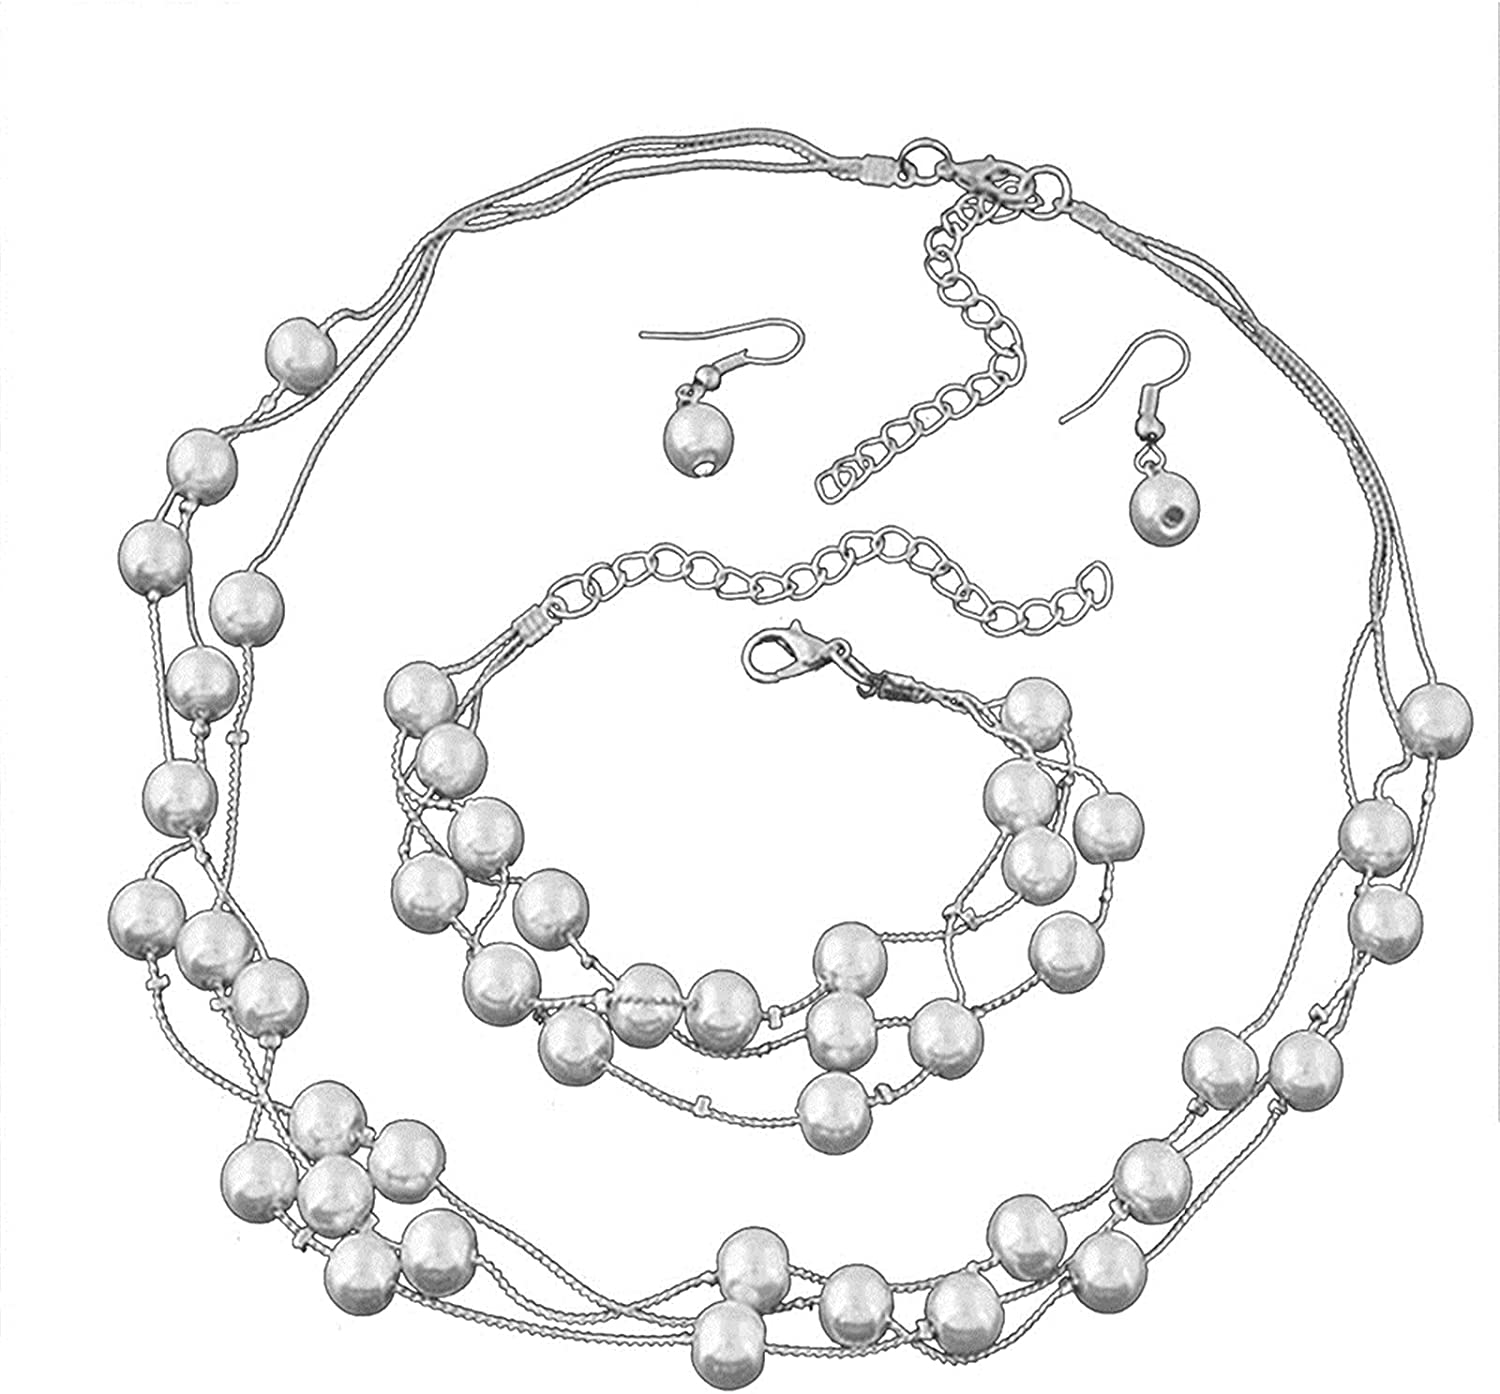 Layered Simulated Pearl Beads Choker Collar Necklace Bracelet Boho Statement Seeds Drop Dangle Earring for Women Girl Teen Multilayered Party Holiday Wedding Jewelry Set